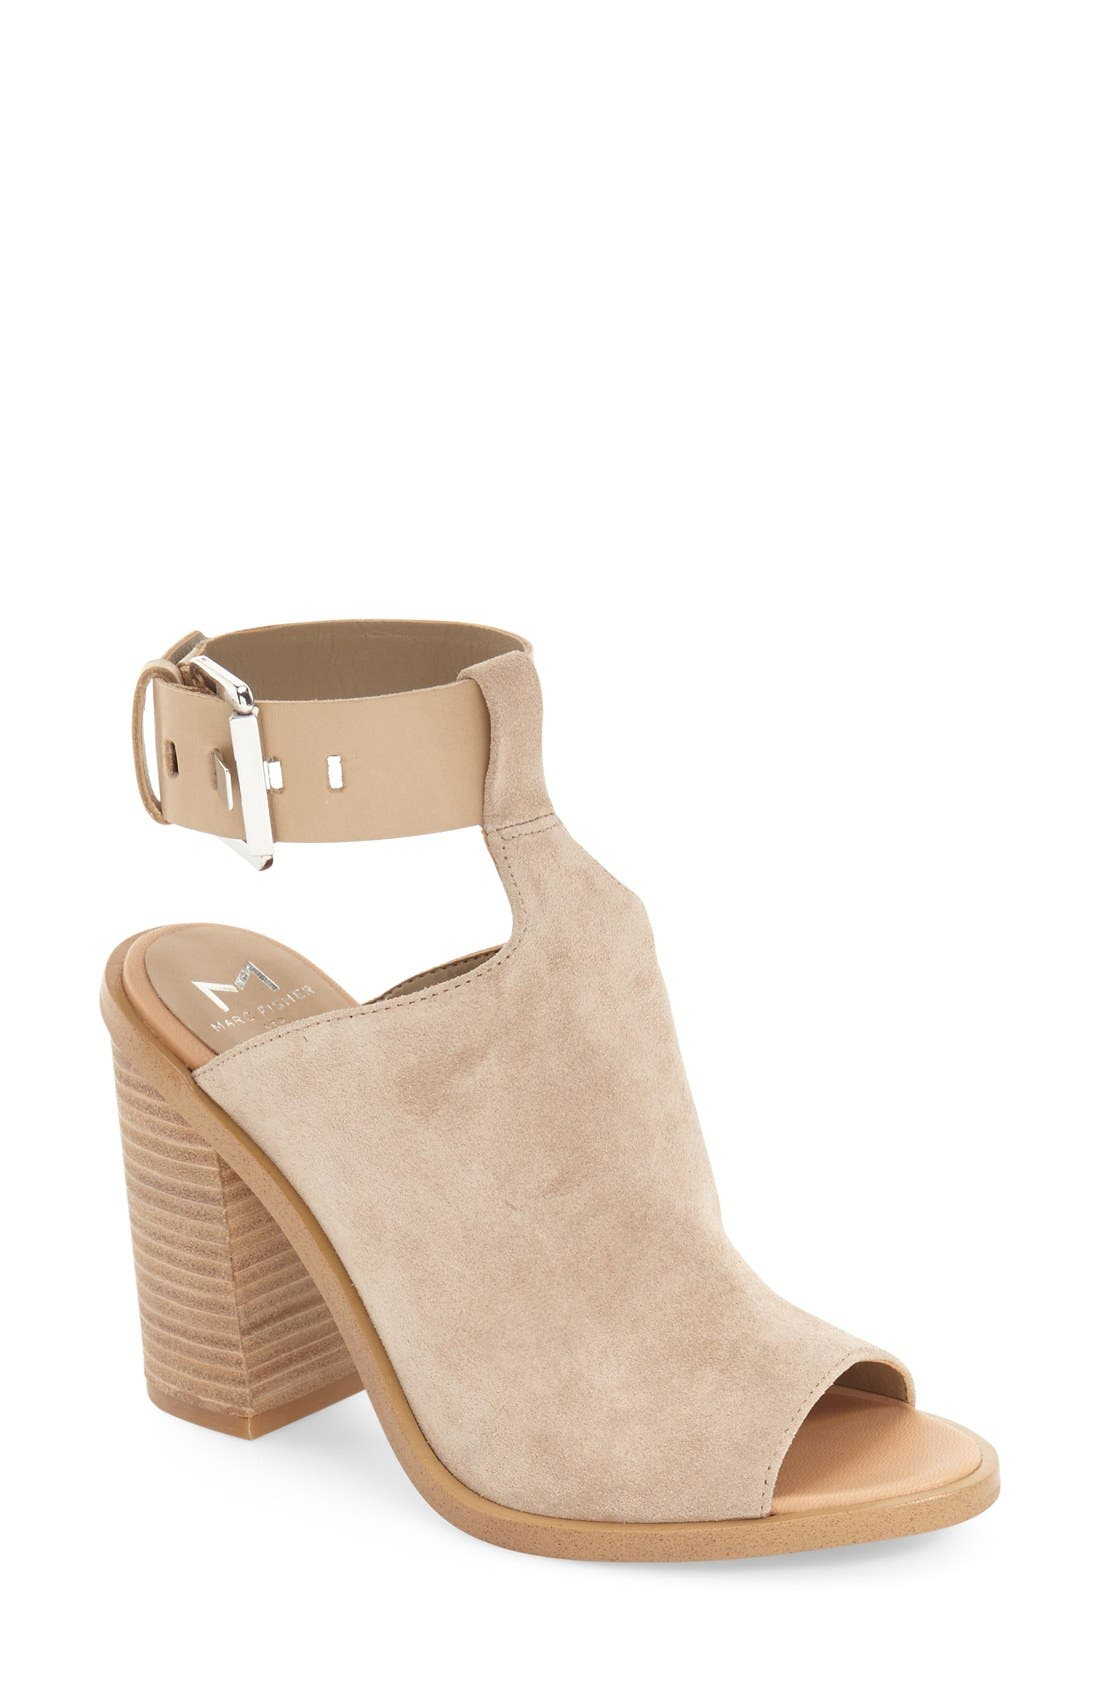 MARC FISHER LTD Vashi Ankle Strap Sandal